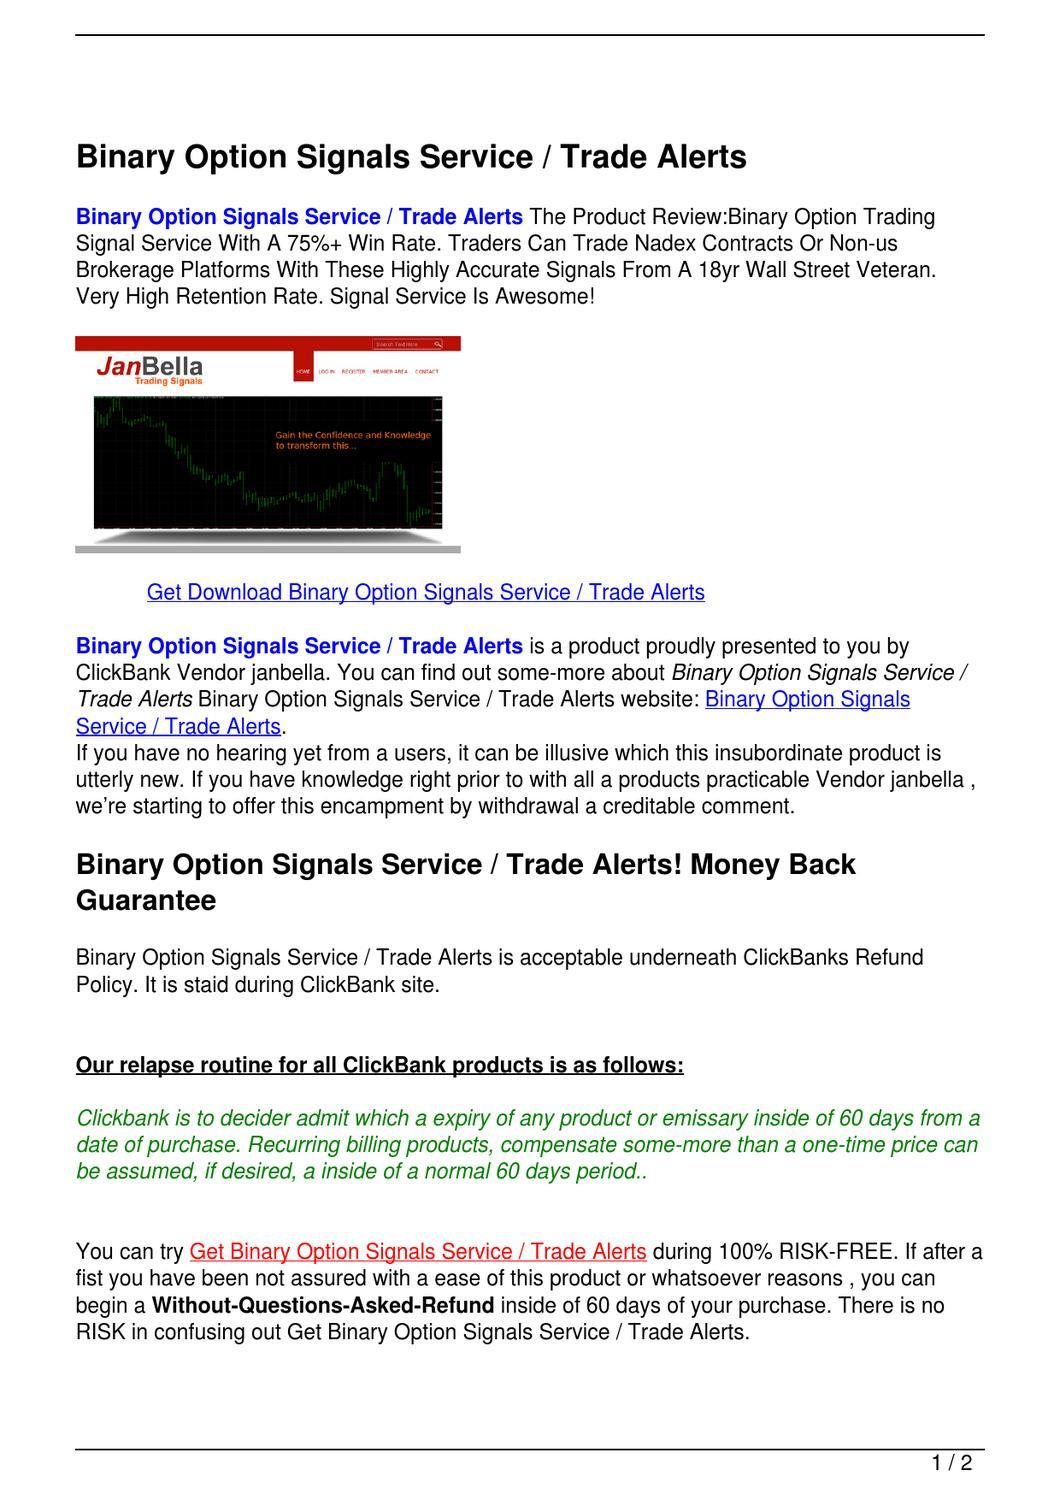 Binary option signal service